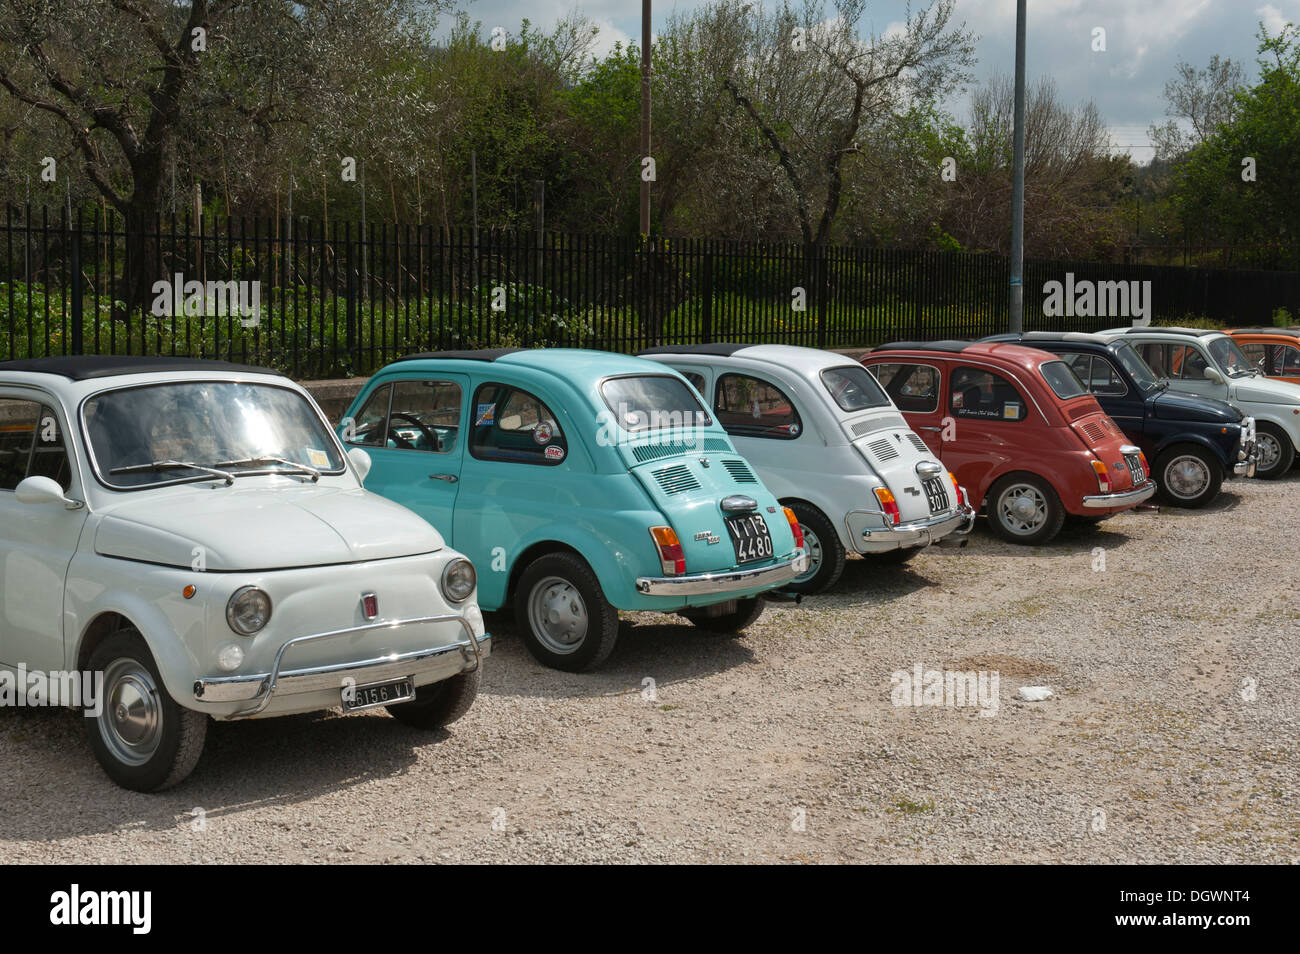 Fiat 500, small cars parked in a row, Bolsena, Lazio, Italy, Southern Europe, Europe - Stock Image